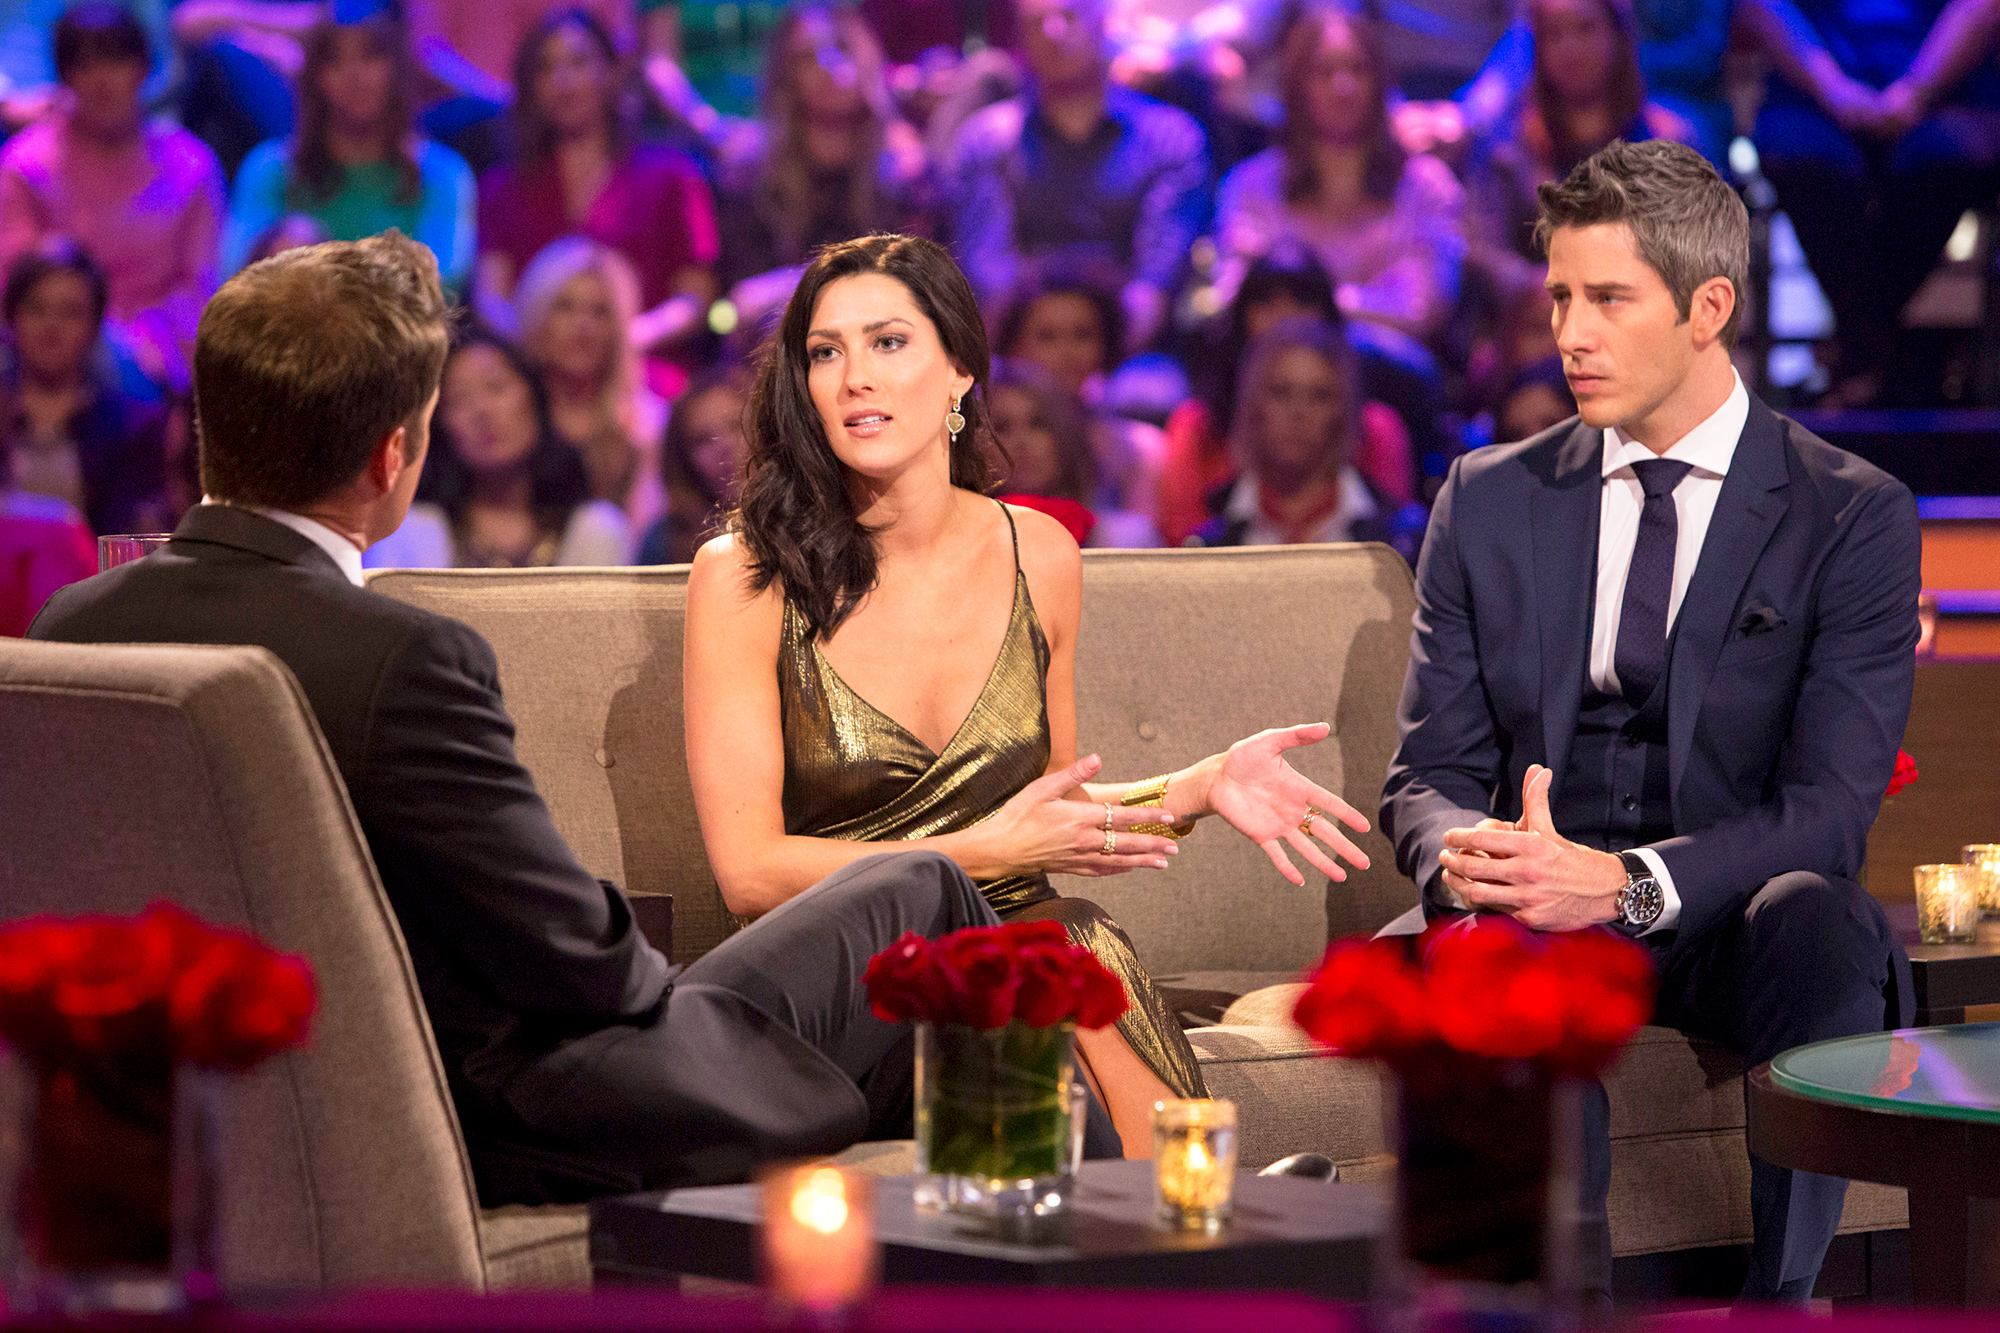 'The Bachelor' finale played out like a Greek tragedy